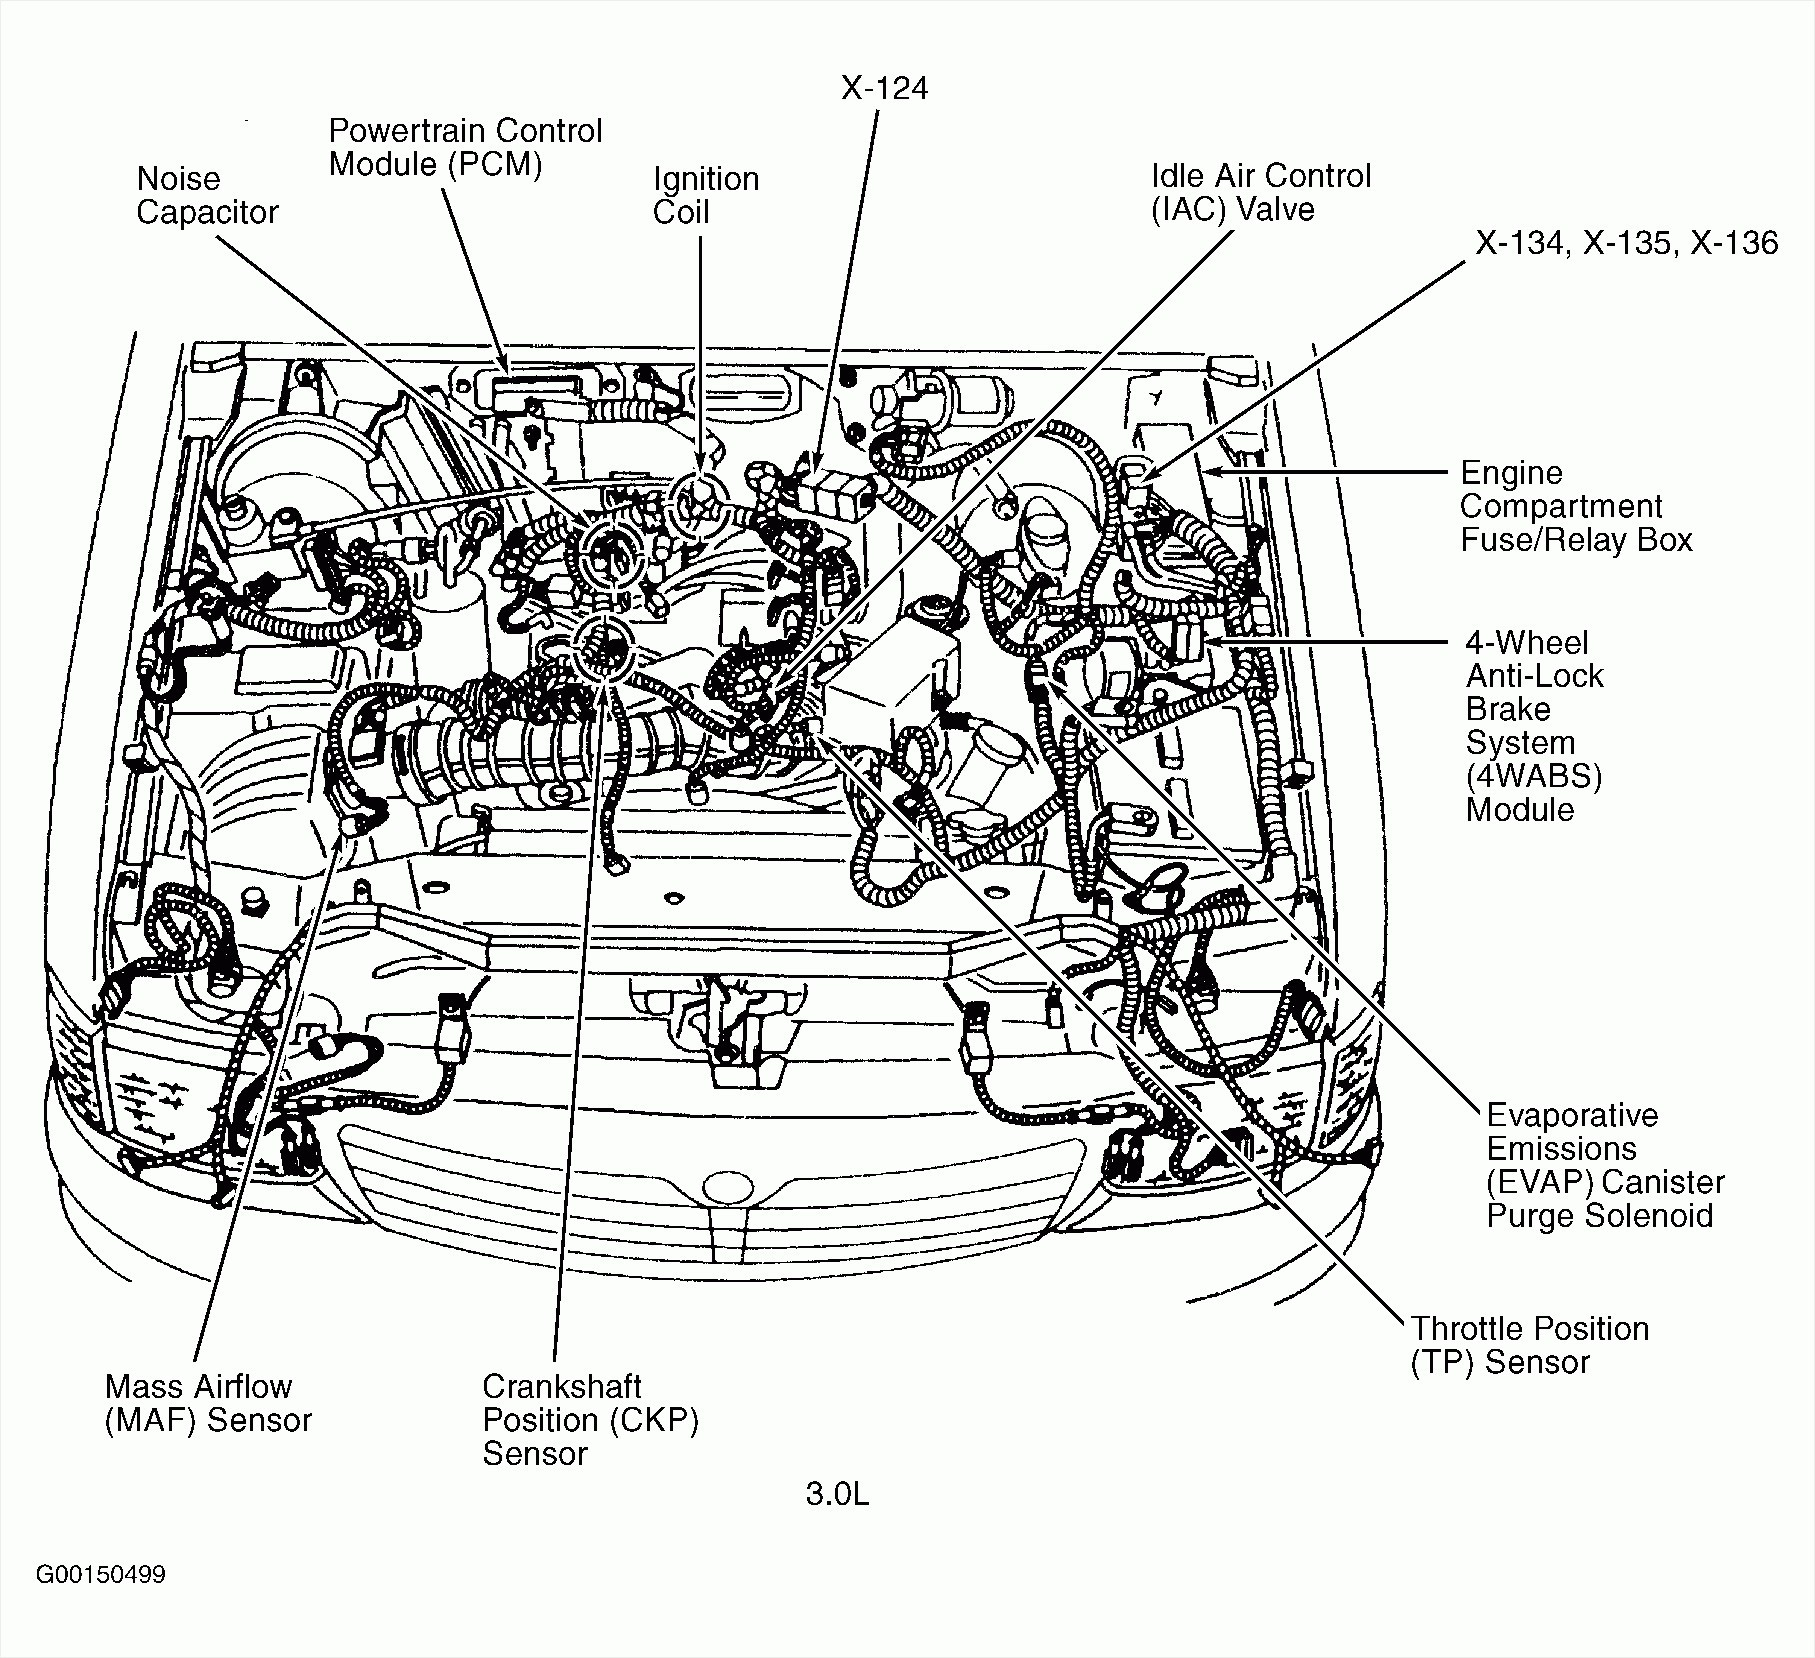 2005 Mazda 6 Engine Diagram 2 3 Data Schema Cylinder 0 Wiring 2004 Headlight Wire Rh Abetter Pw 2006 L Belt Routing